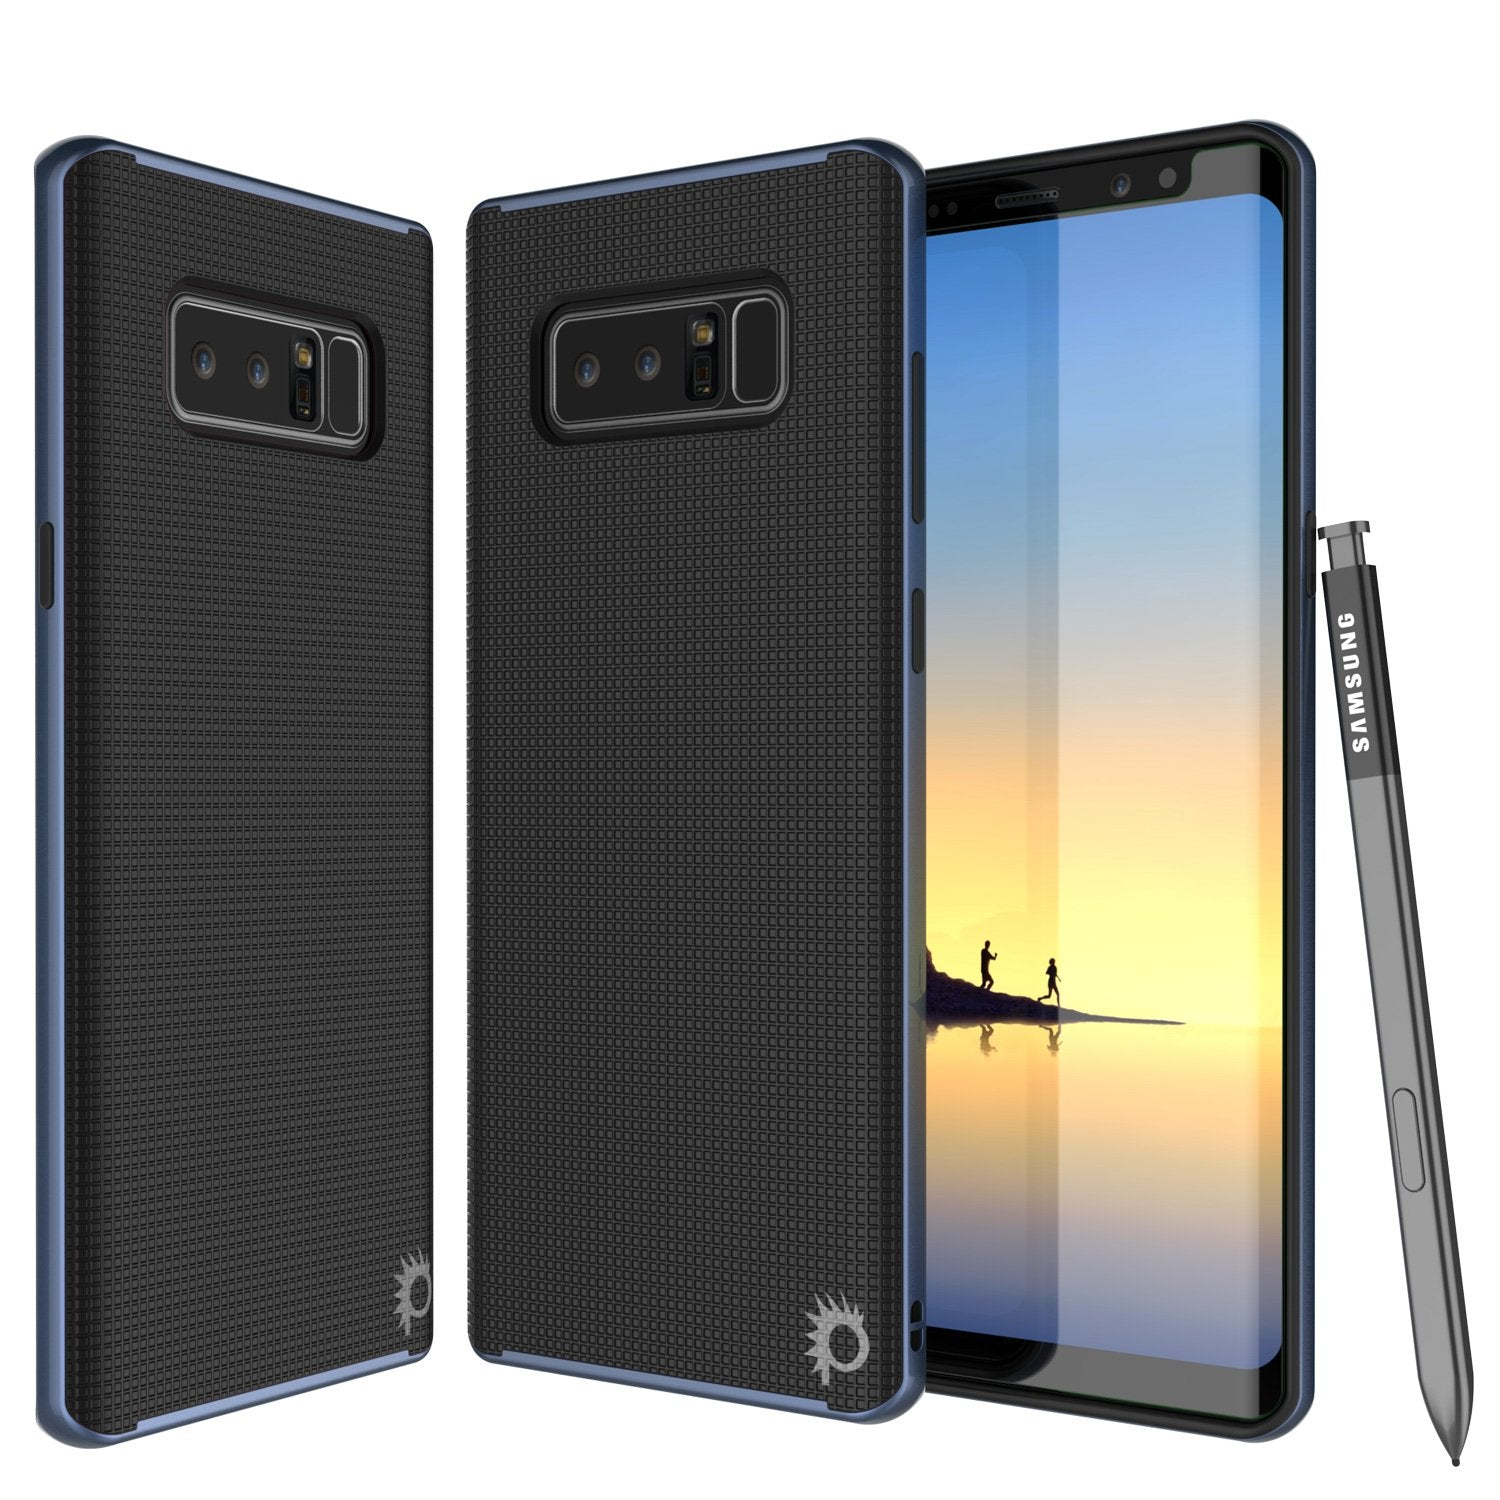 Galaxy Note 8 Case, PunkCase [Stealth Series] Hybrid 3-Piece Shockproof Dual Layer Cover [Non-Slip] [Soft TPU + PC Bumper] with PUNKSHIELD Screen Protector for Samsung Note 8 [Navy Blue]